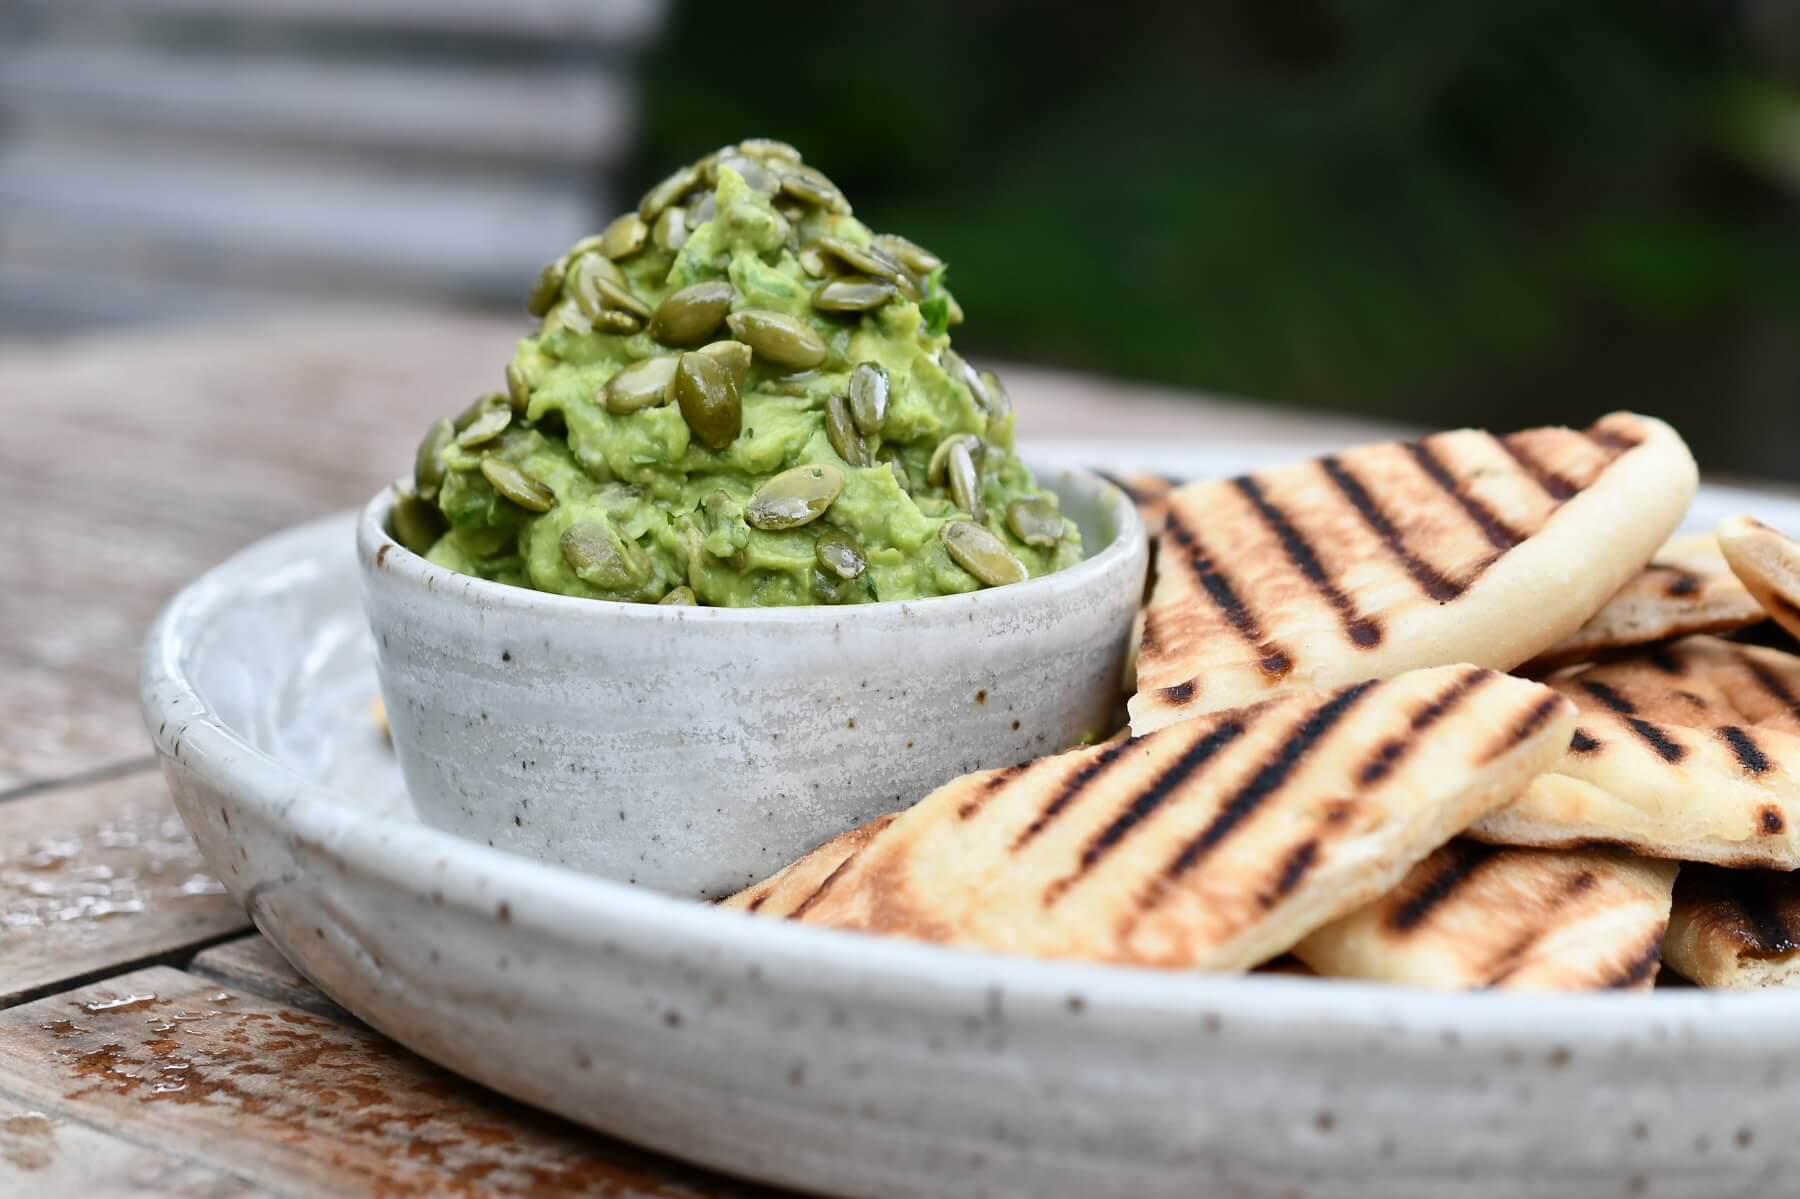 Curried Avocado with Grilled Naan - Copy.jpg